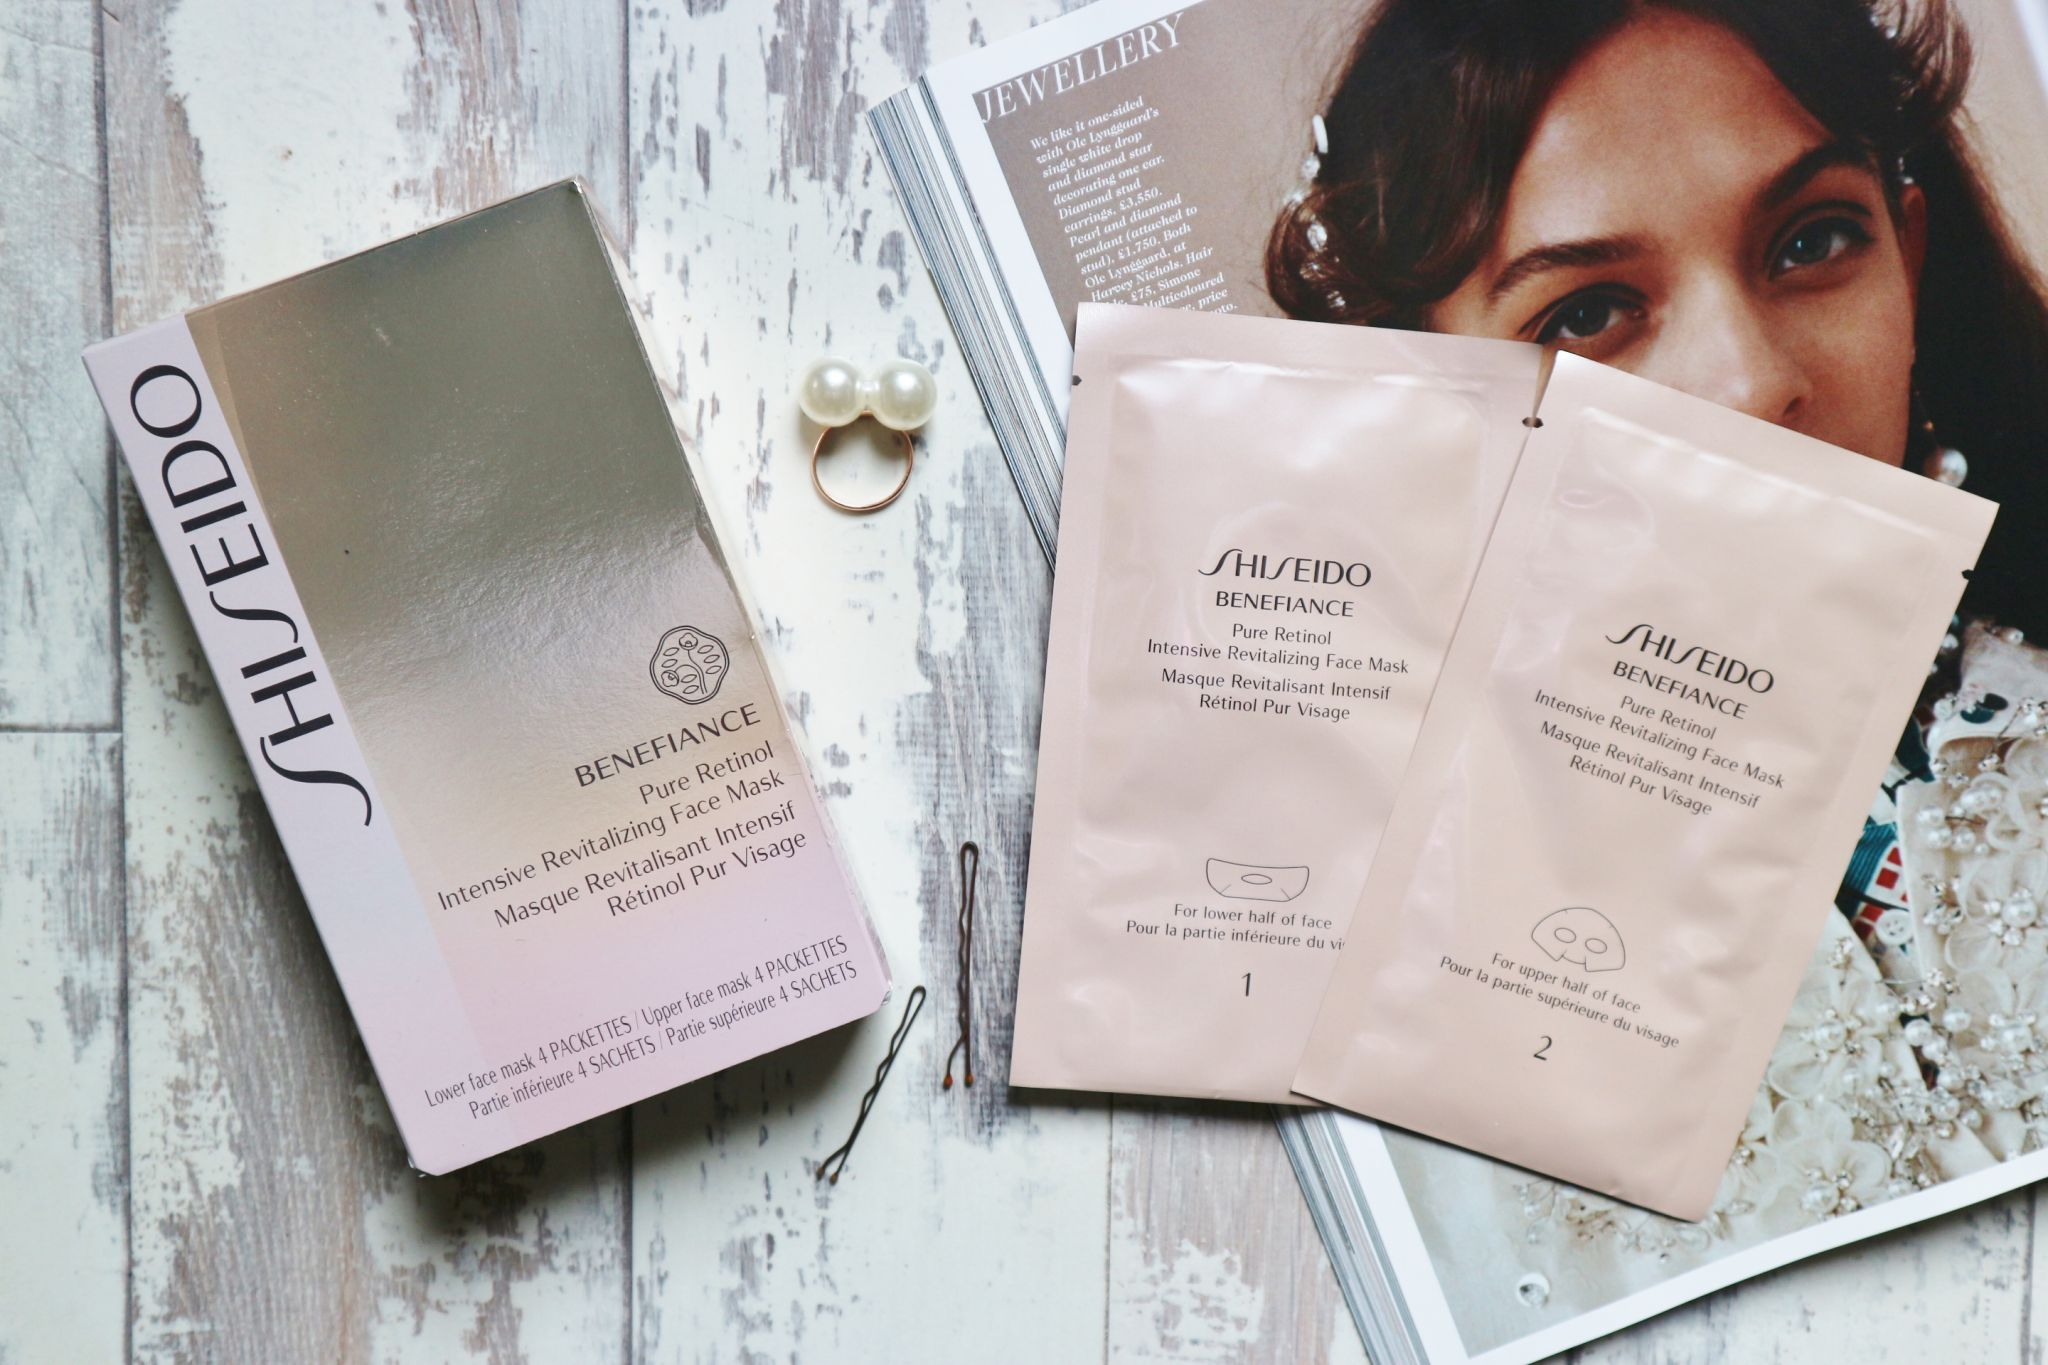 Shiseido Benefiance Face Mask